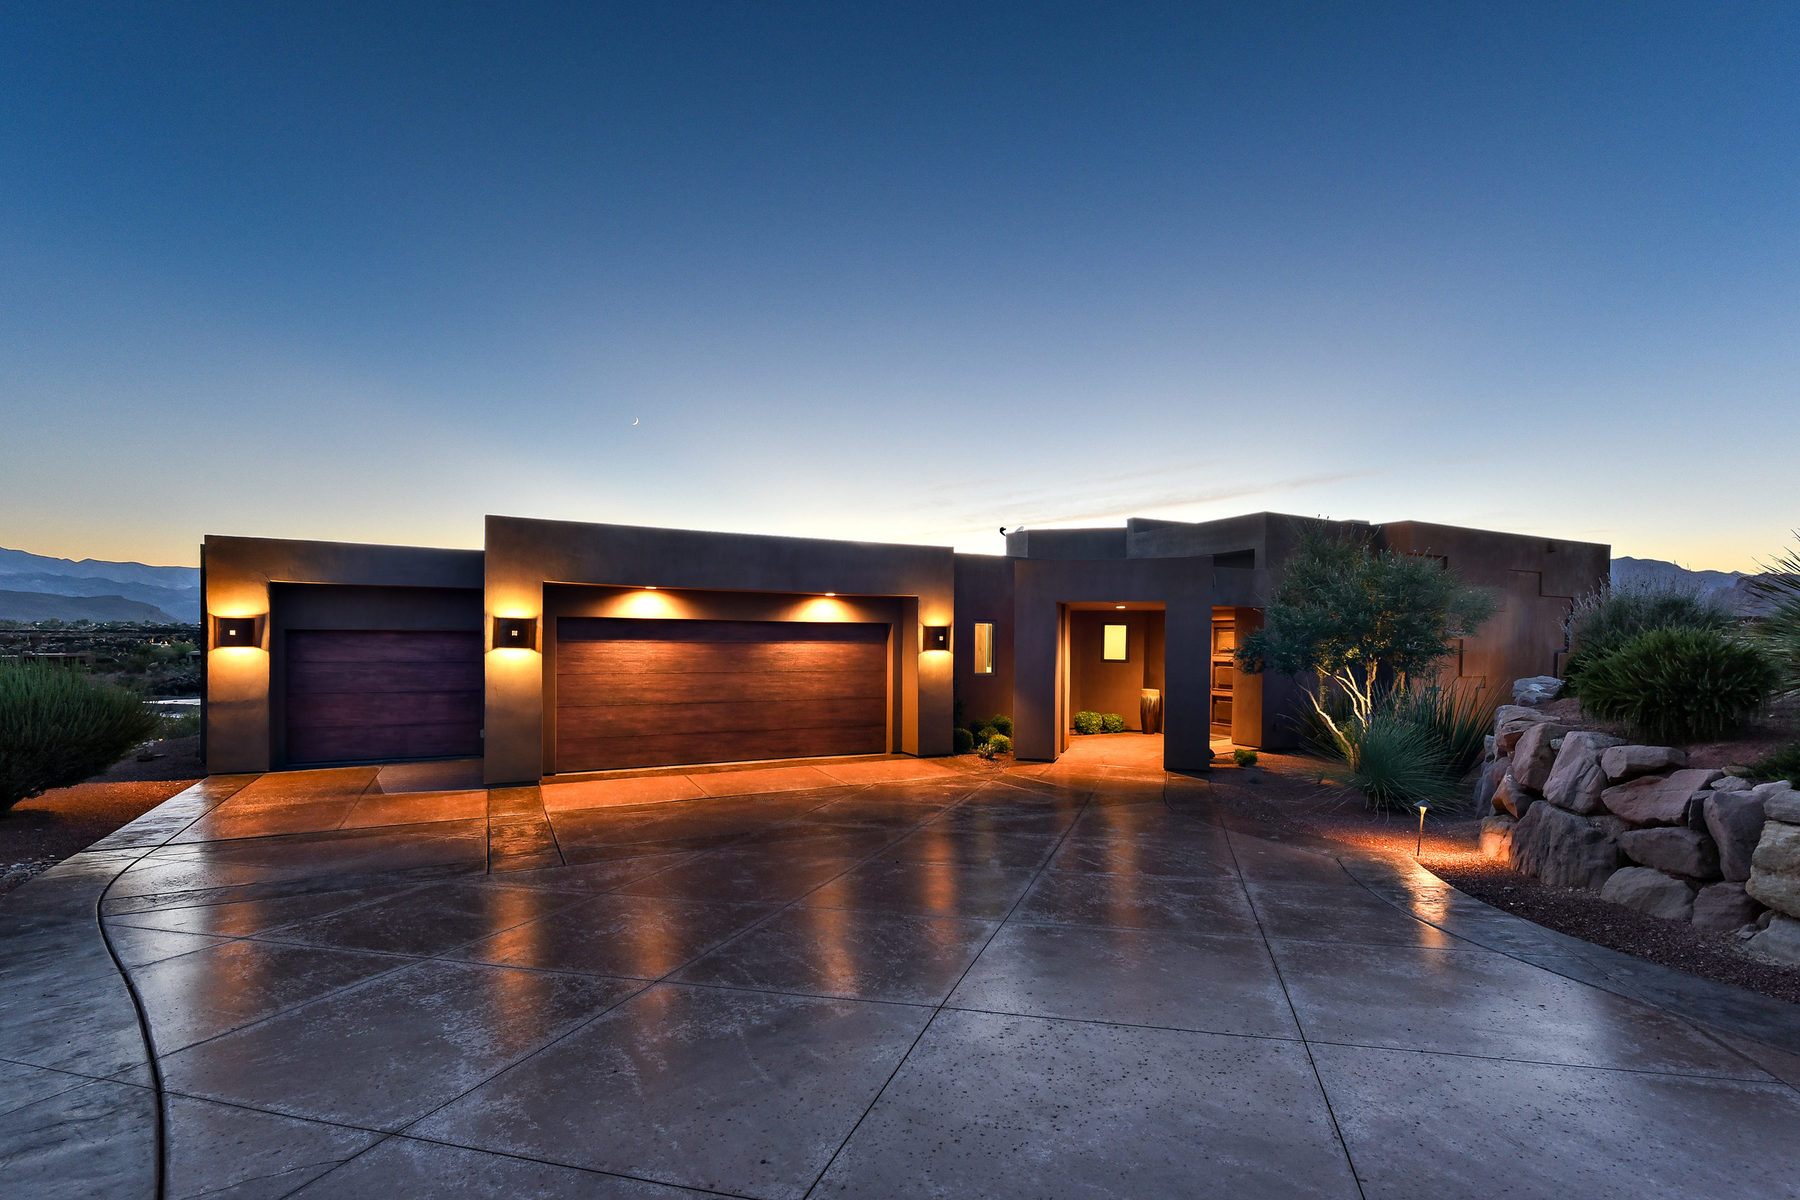 Moradia para Venda às Timeless Contemporary Retreat 2411 Tavimaus Cir St. George, Utah, 84770 Estados Unidos